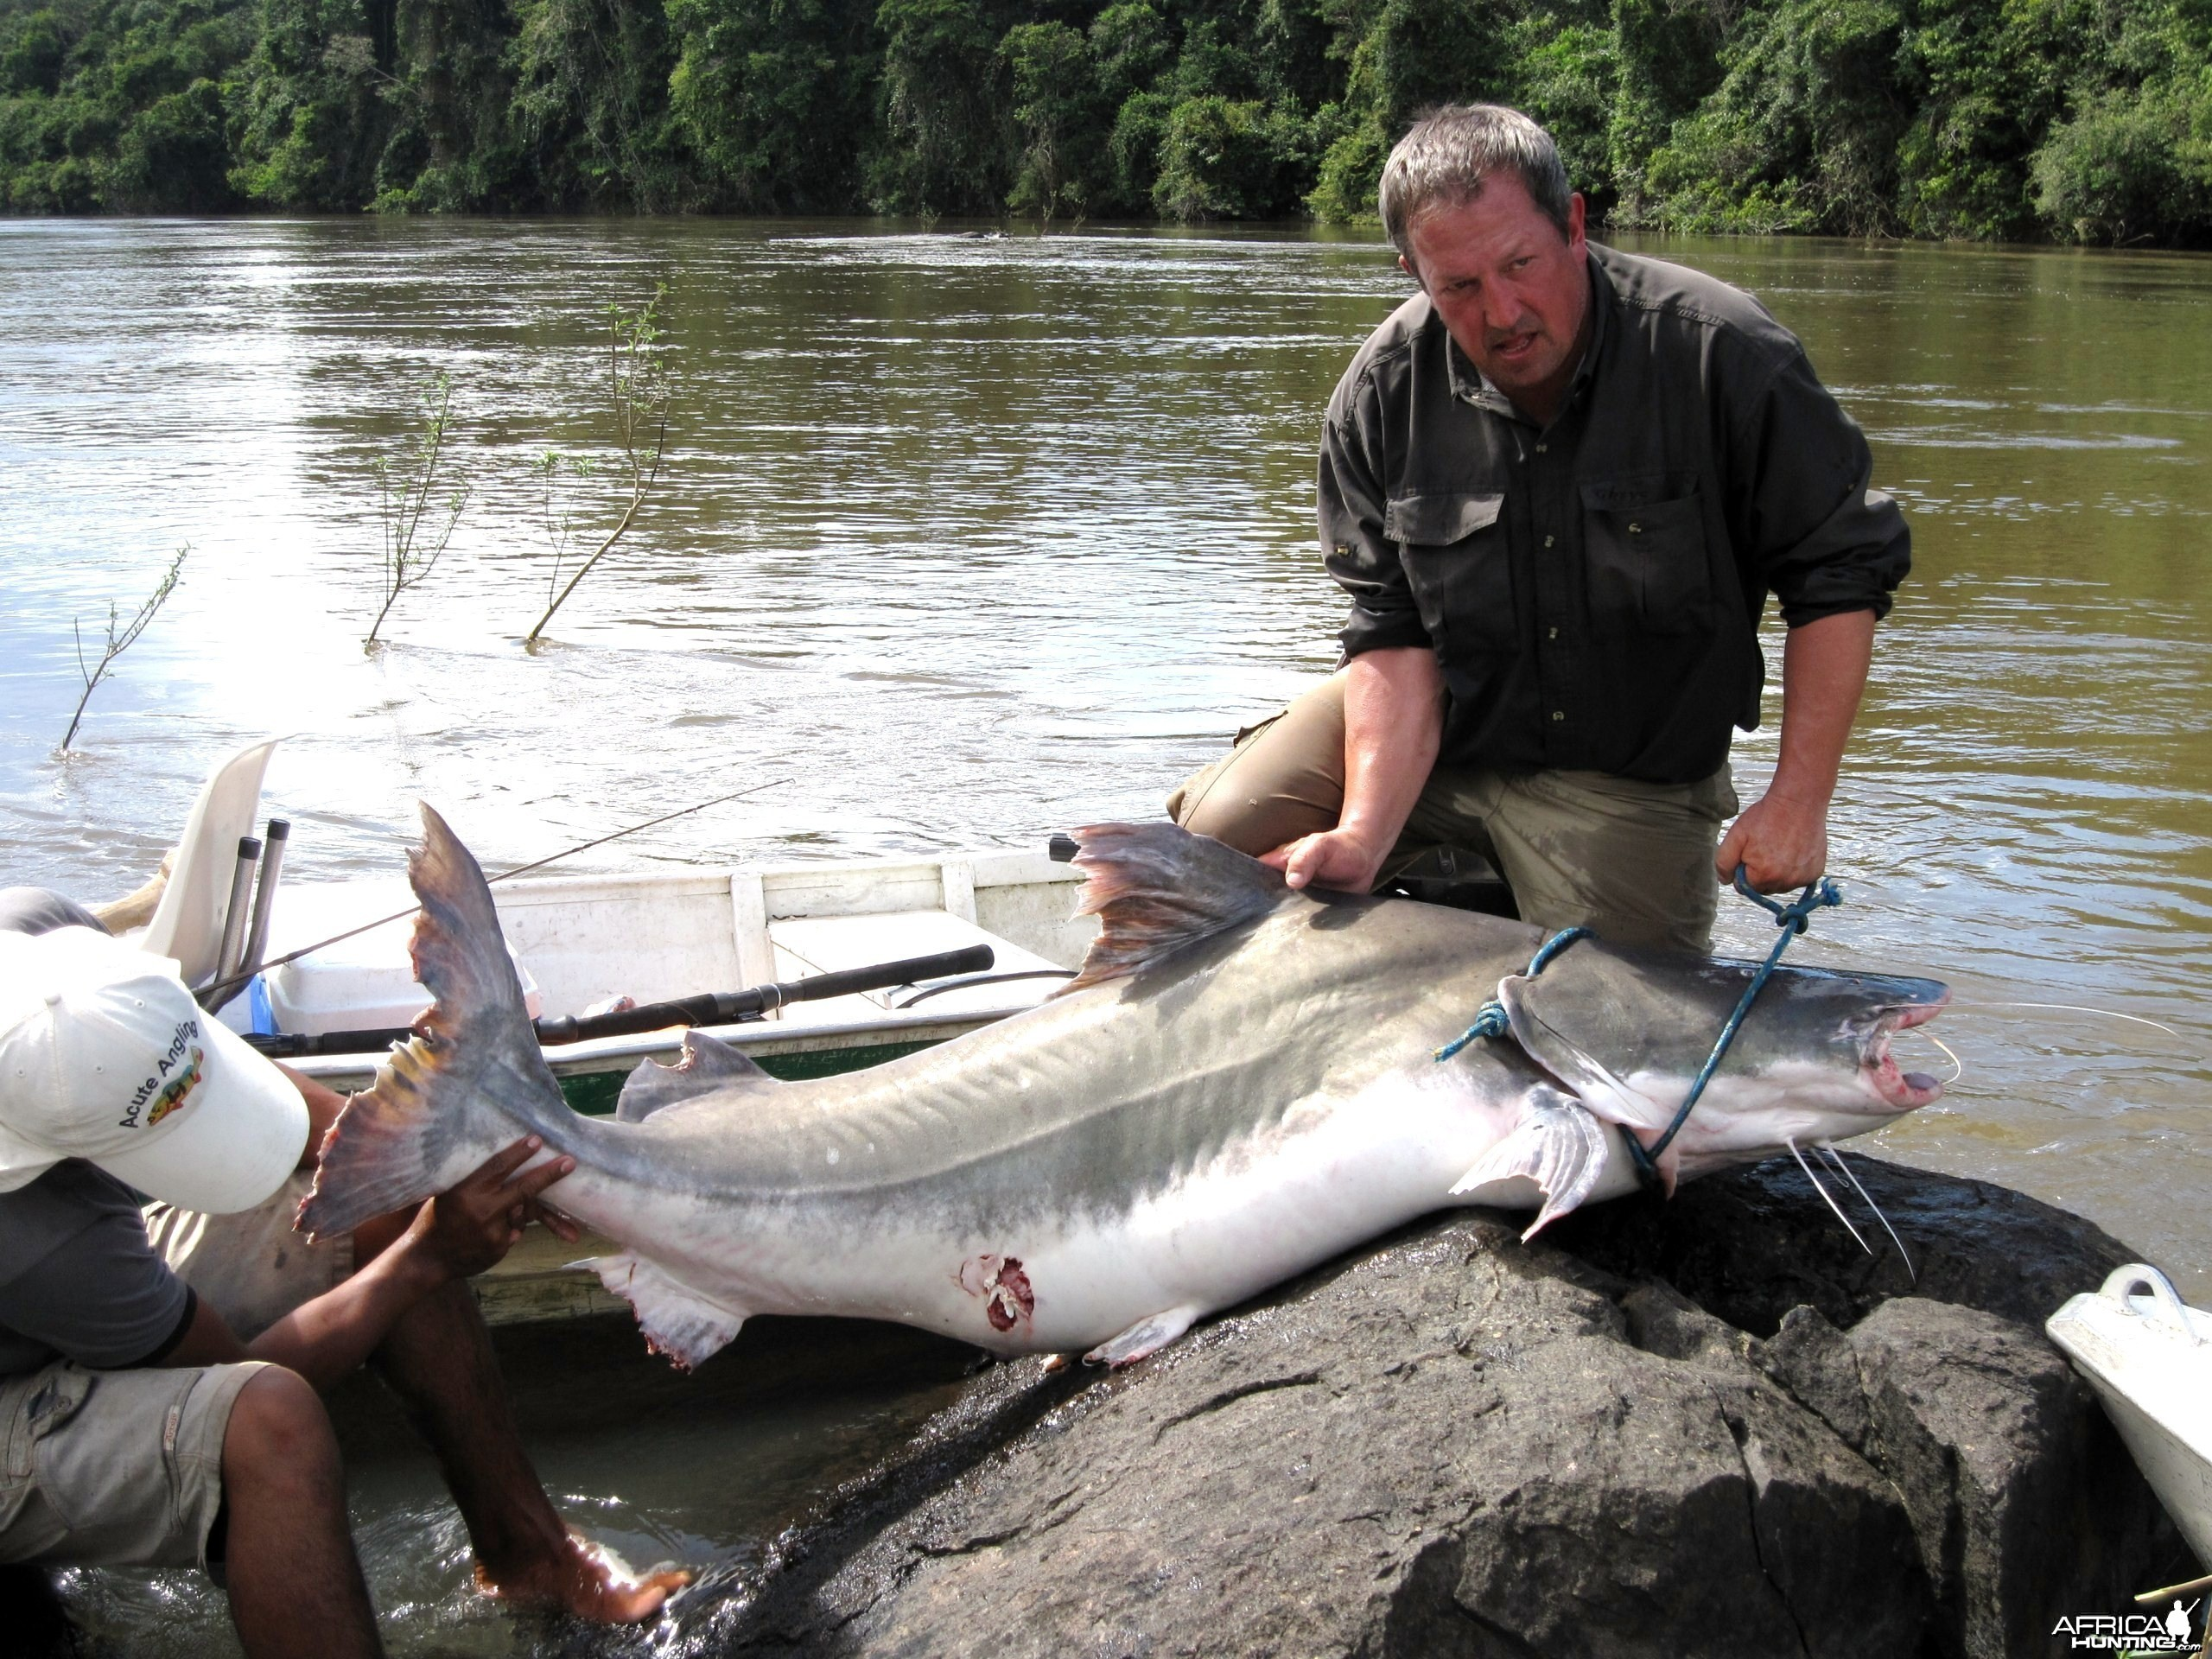 Piraiba catfish from the Amazon